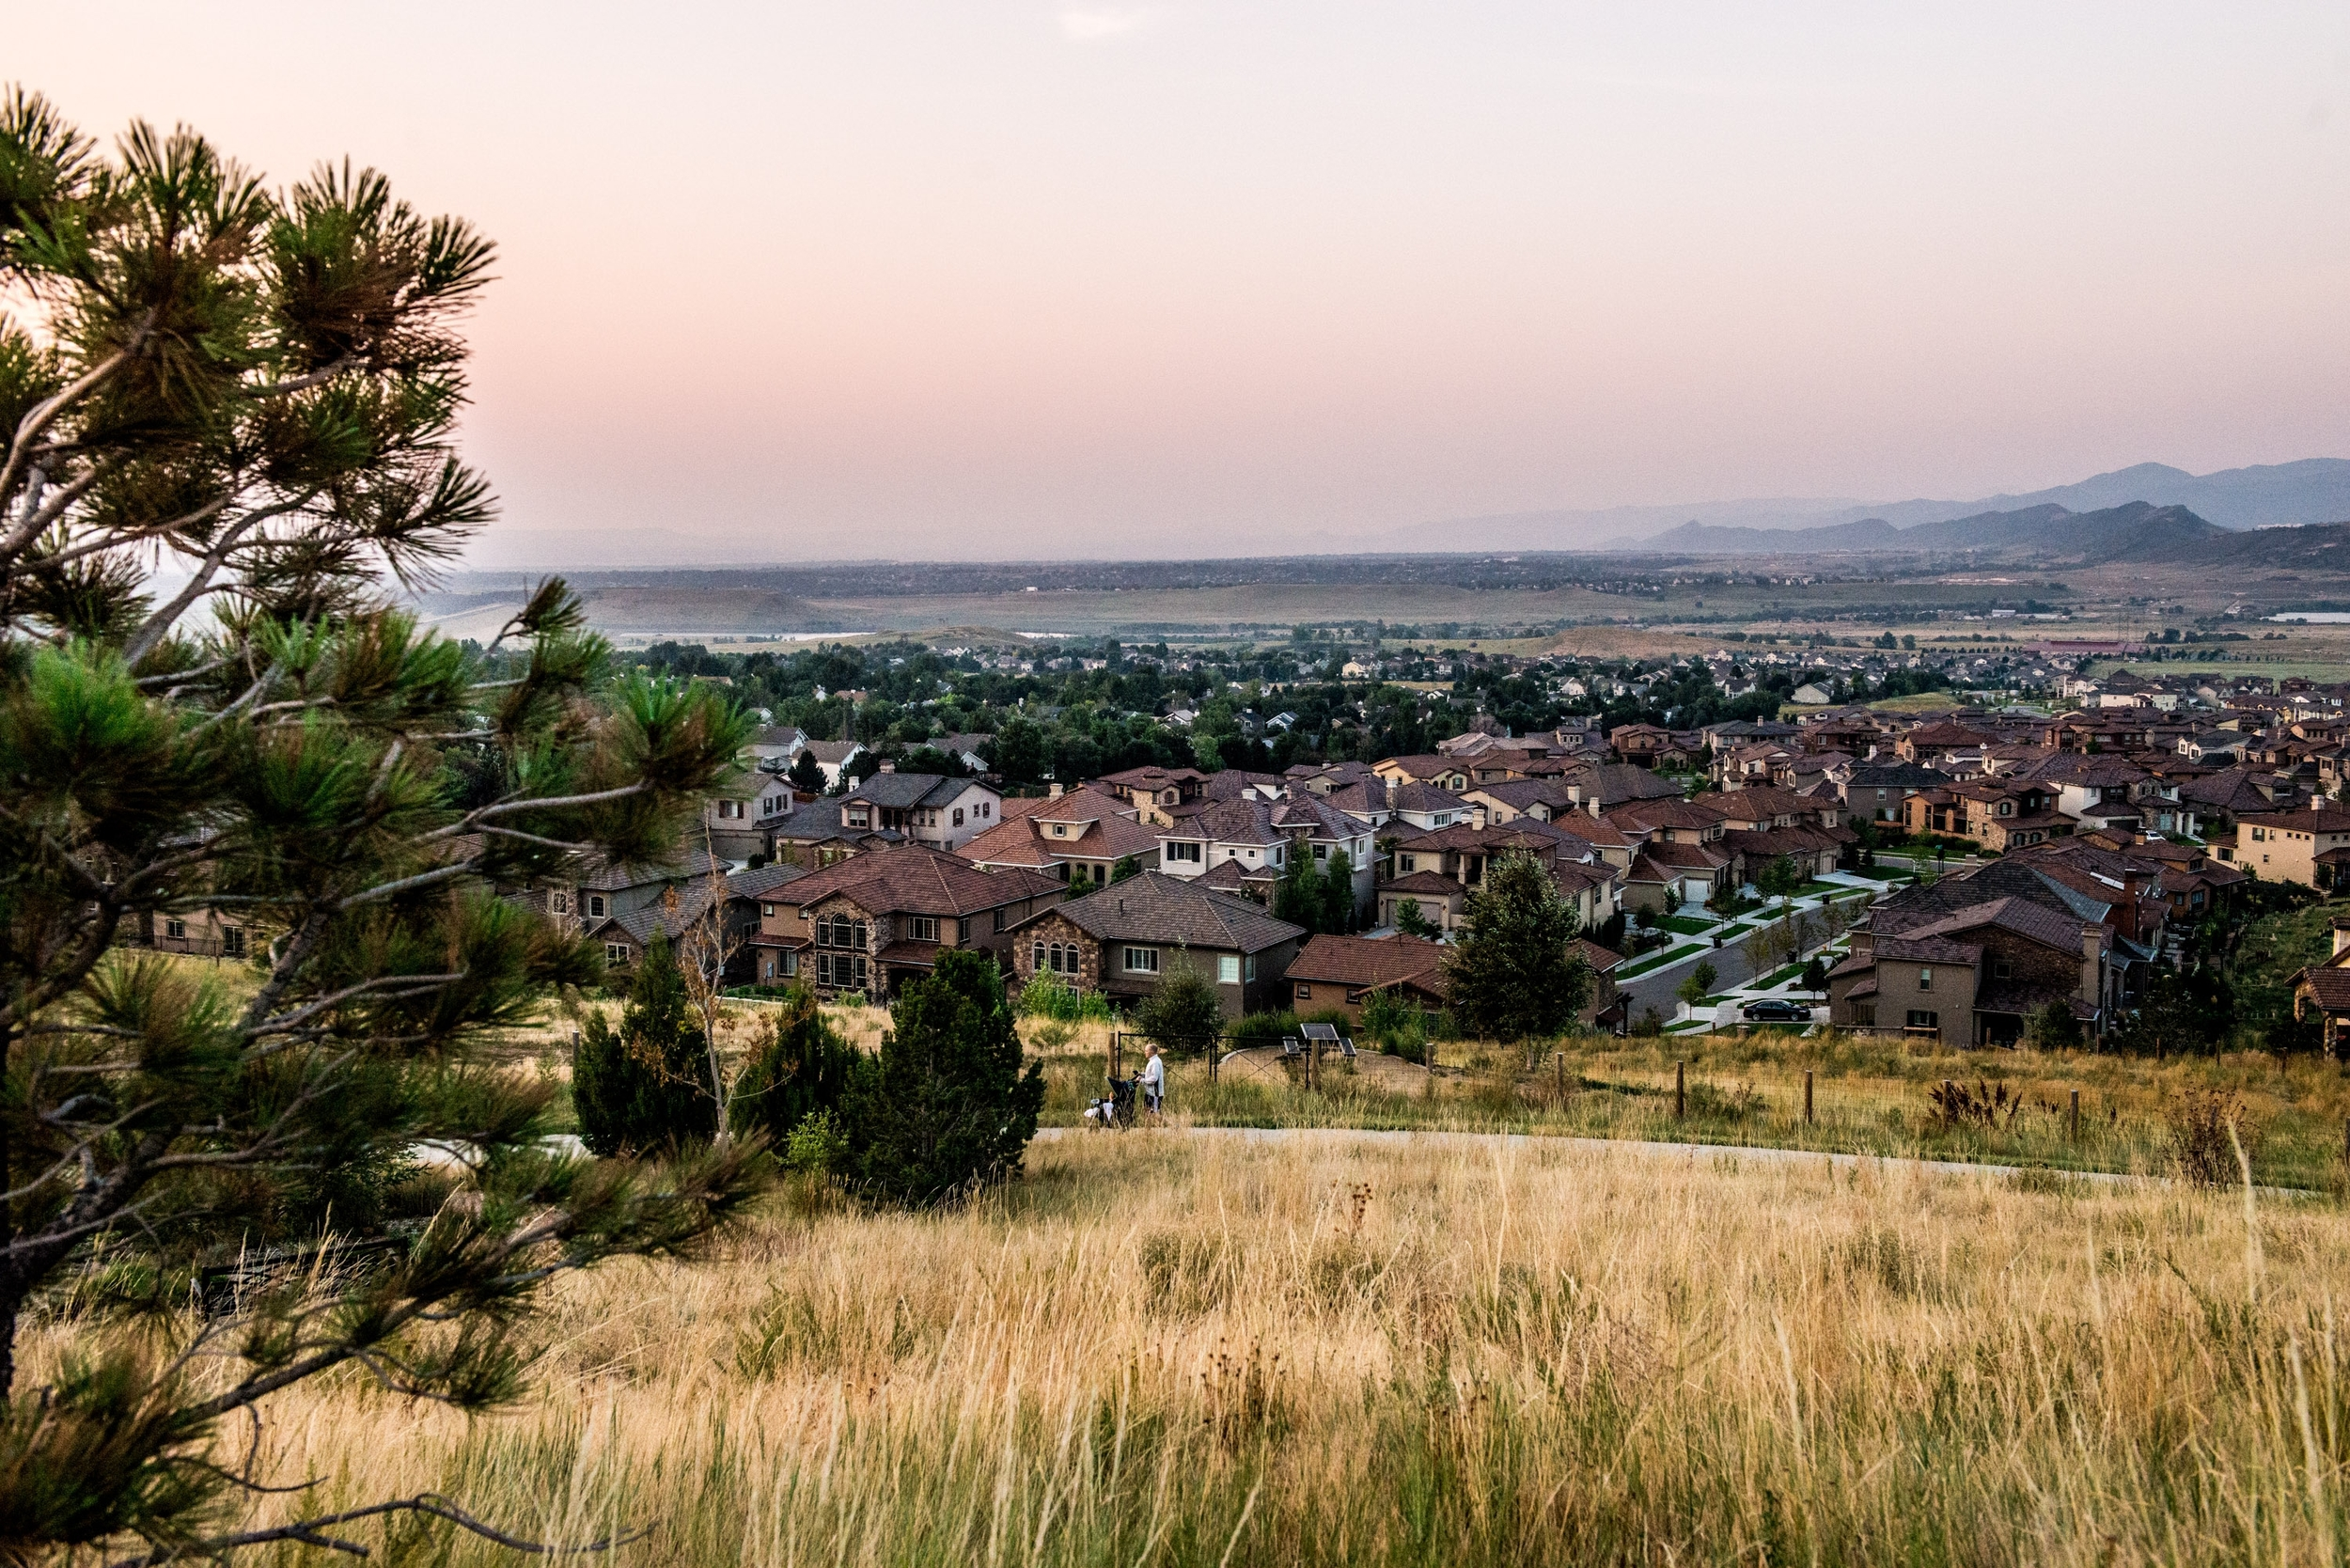 Solterra community sits in the shadow of the foothills in Lakewood, CO